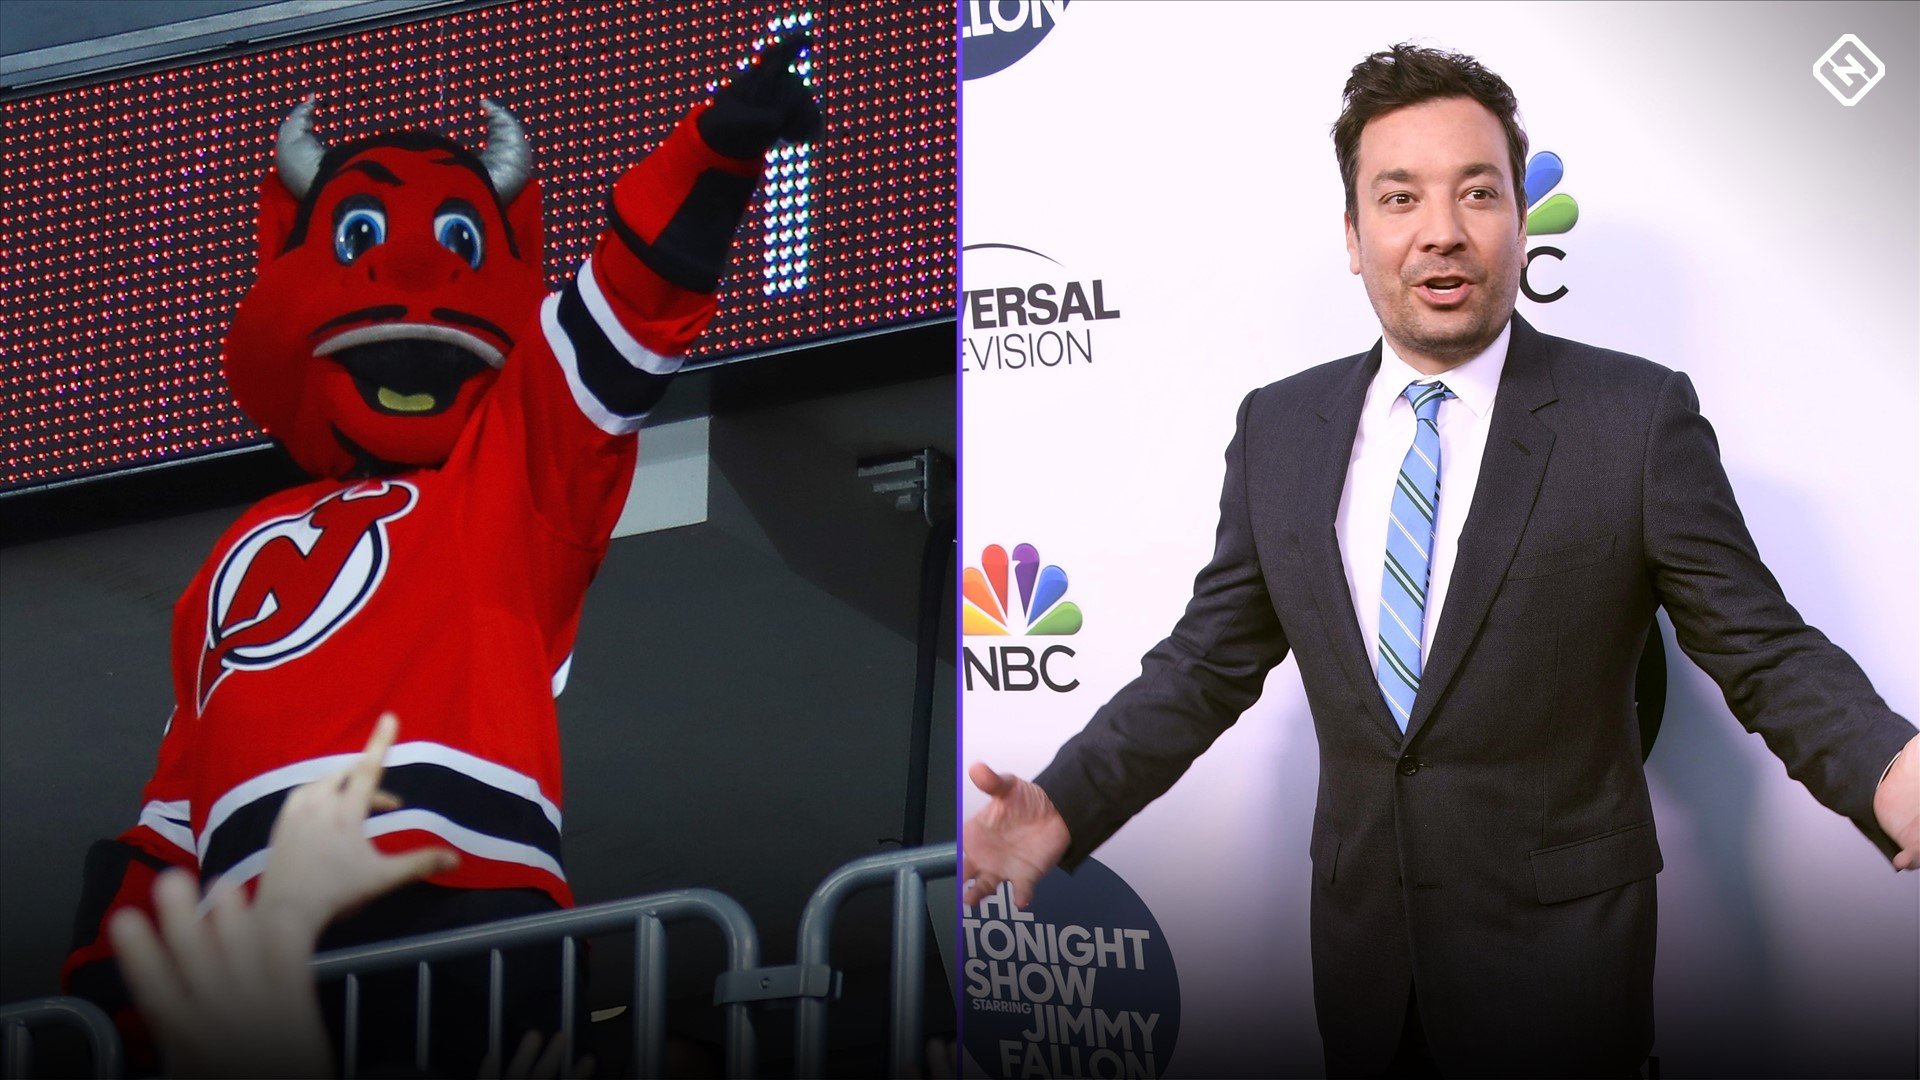 Jimmy Fallon accepts bet from New Jersey Devils' mascot . . . and loses